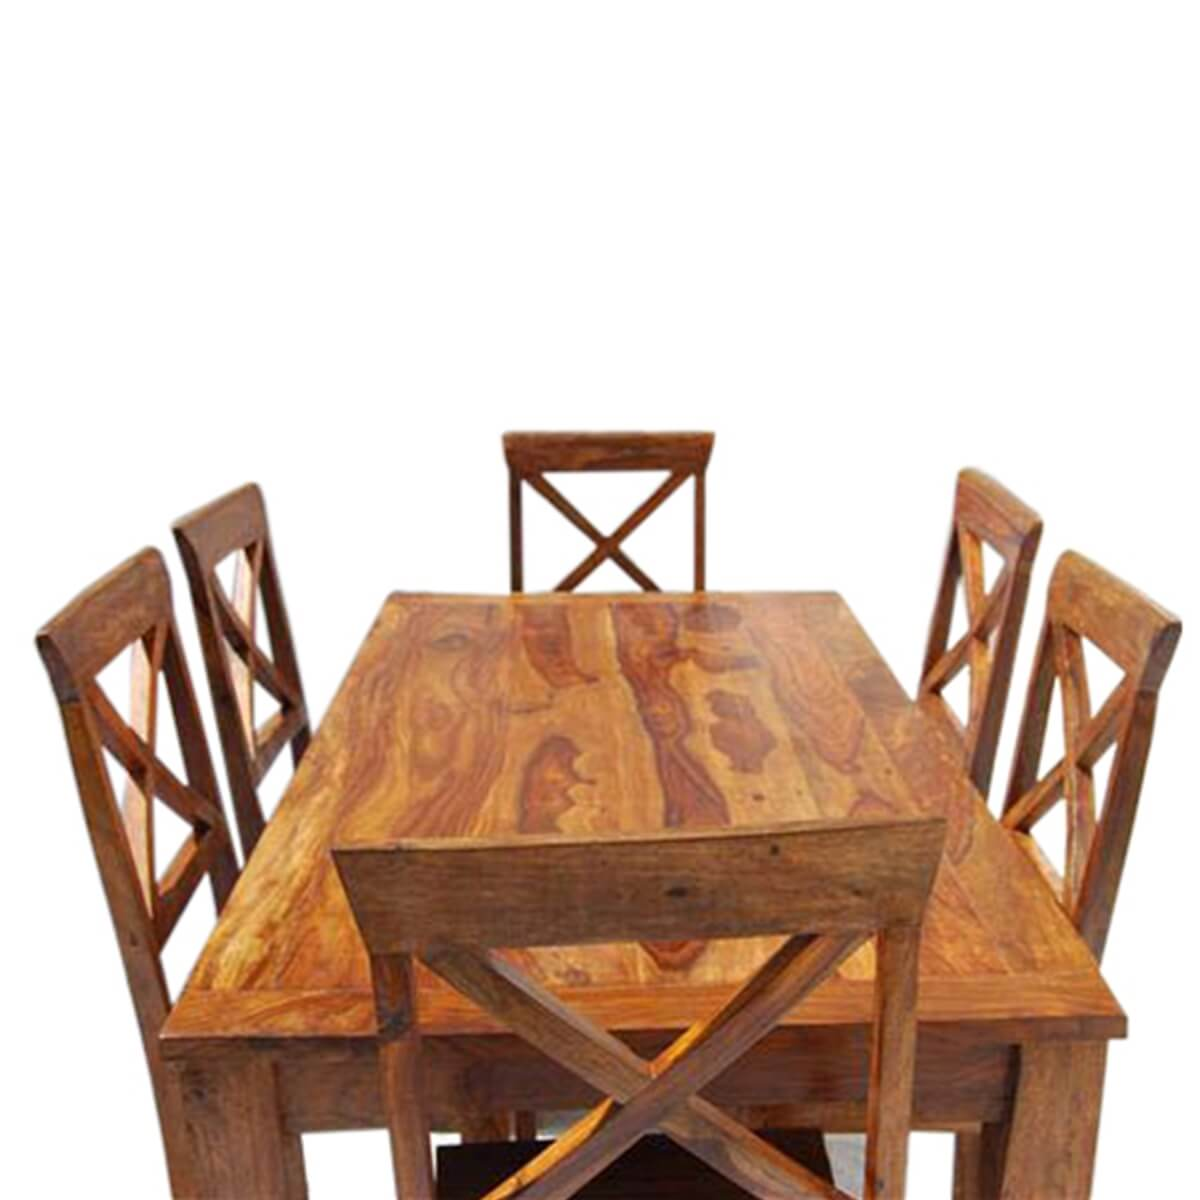 Rustic Solid Wood Oklahoma Dining Table amp Chair Set : 13512 from www.sierralivingconcepts.com size 1200 x 1200 jpeg 349kB